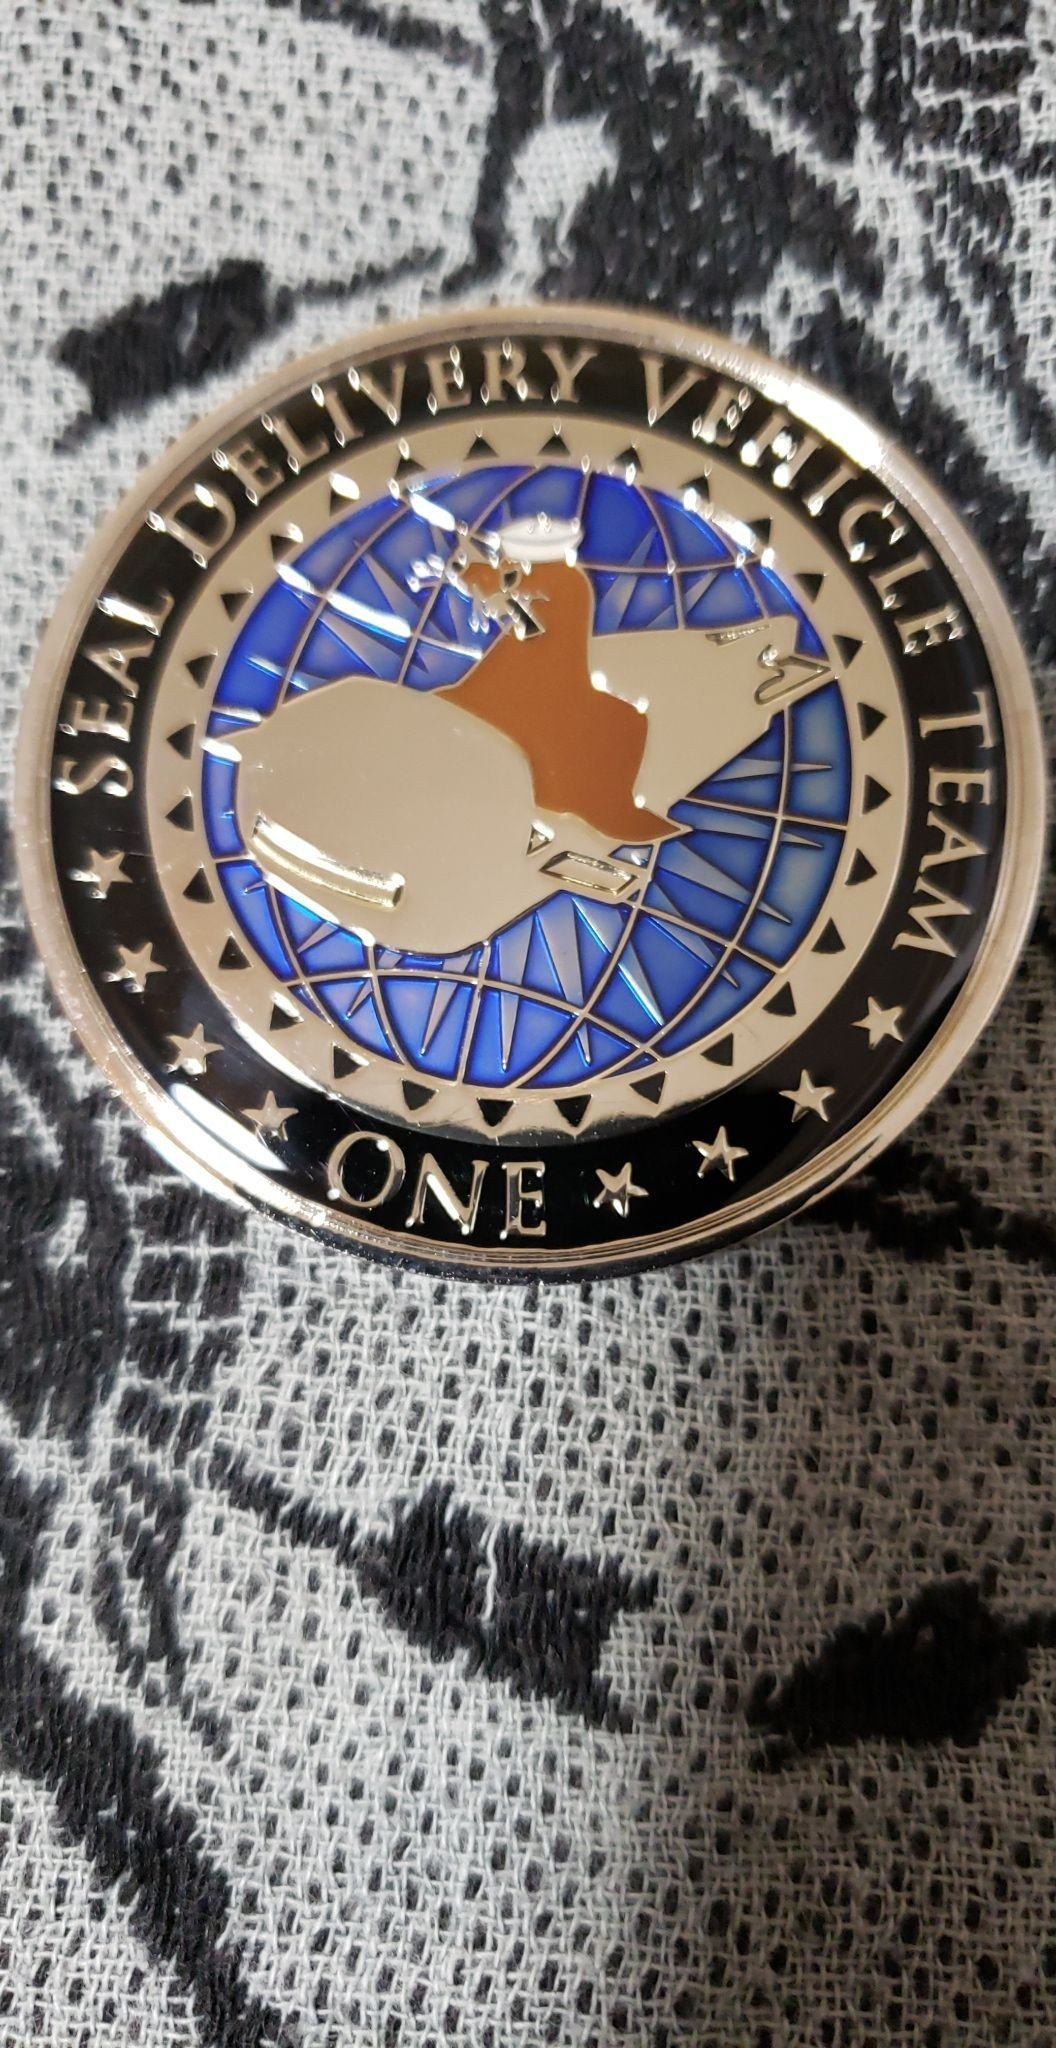 Seal Delivery Vehicle Team One SDVT-1 Task Unit Alpha Large Numbered 53 Authentic Rare Seal Team Challenge Coin front